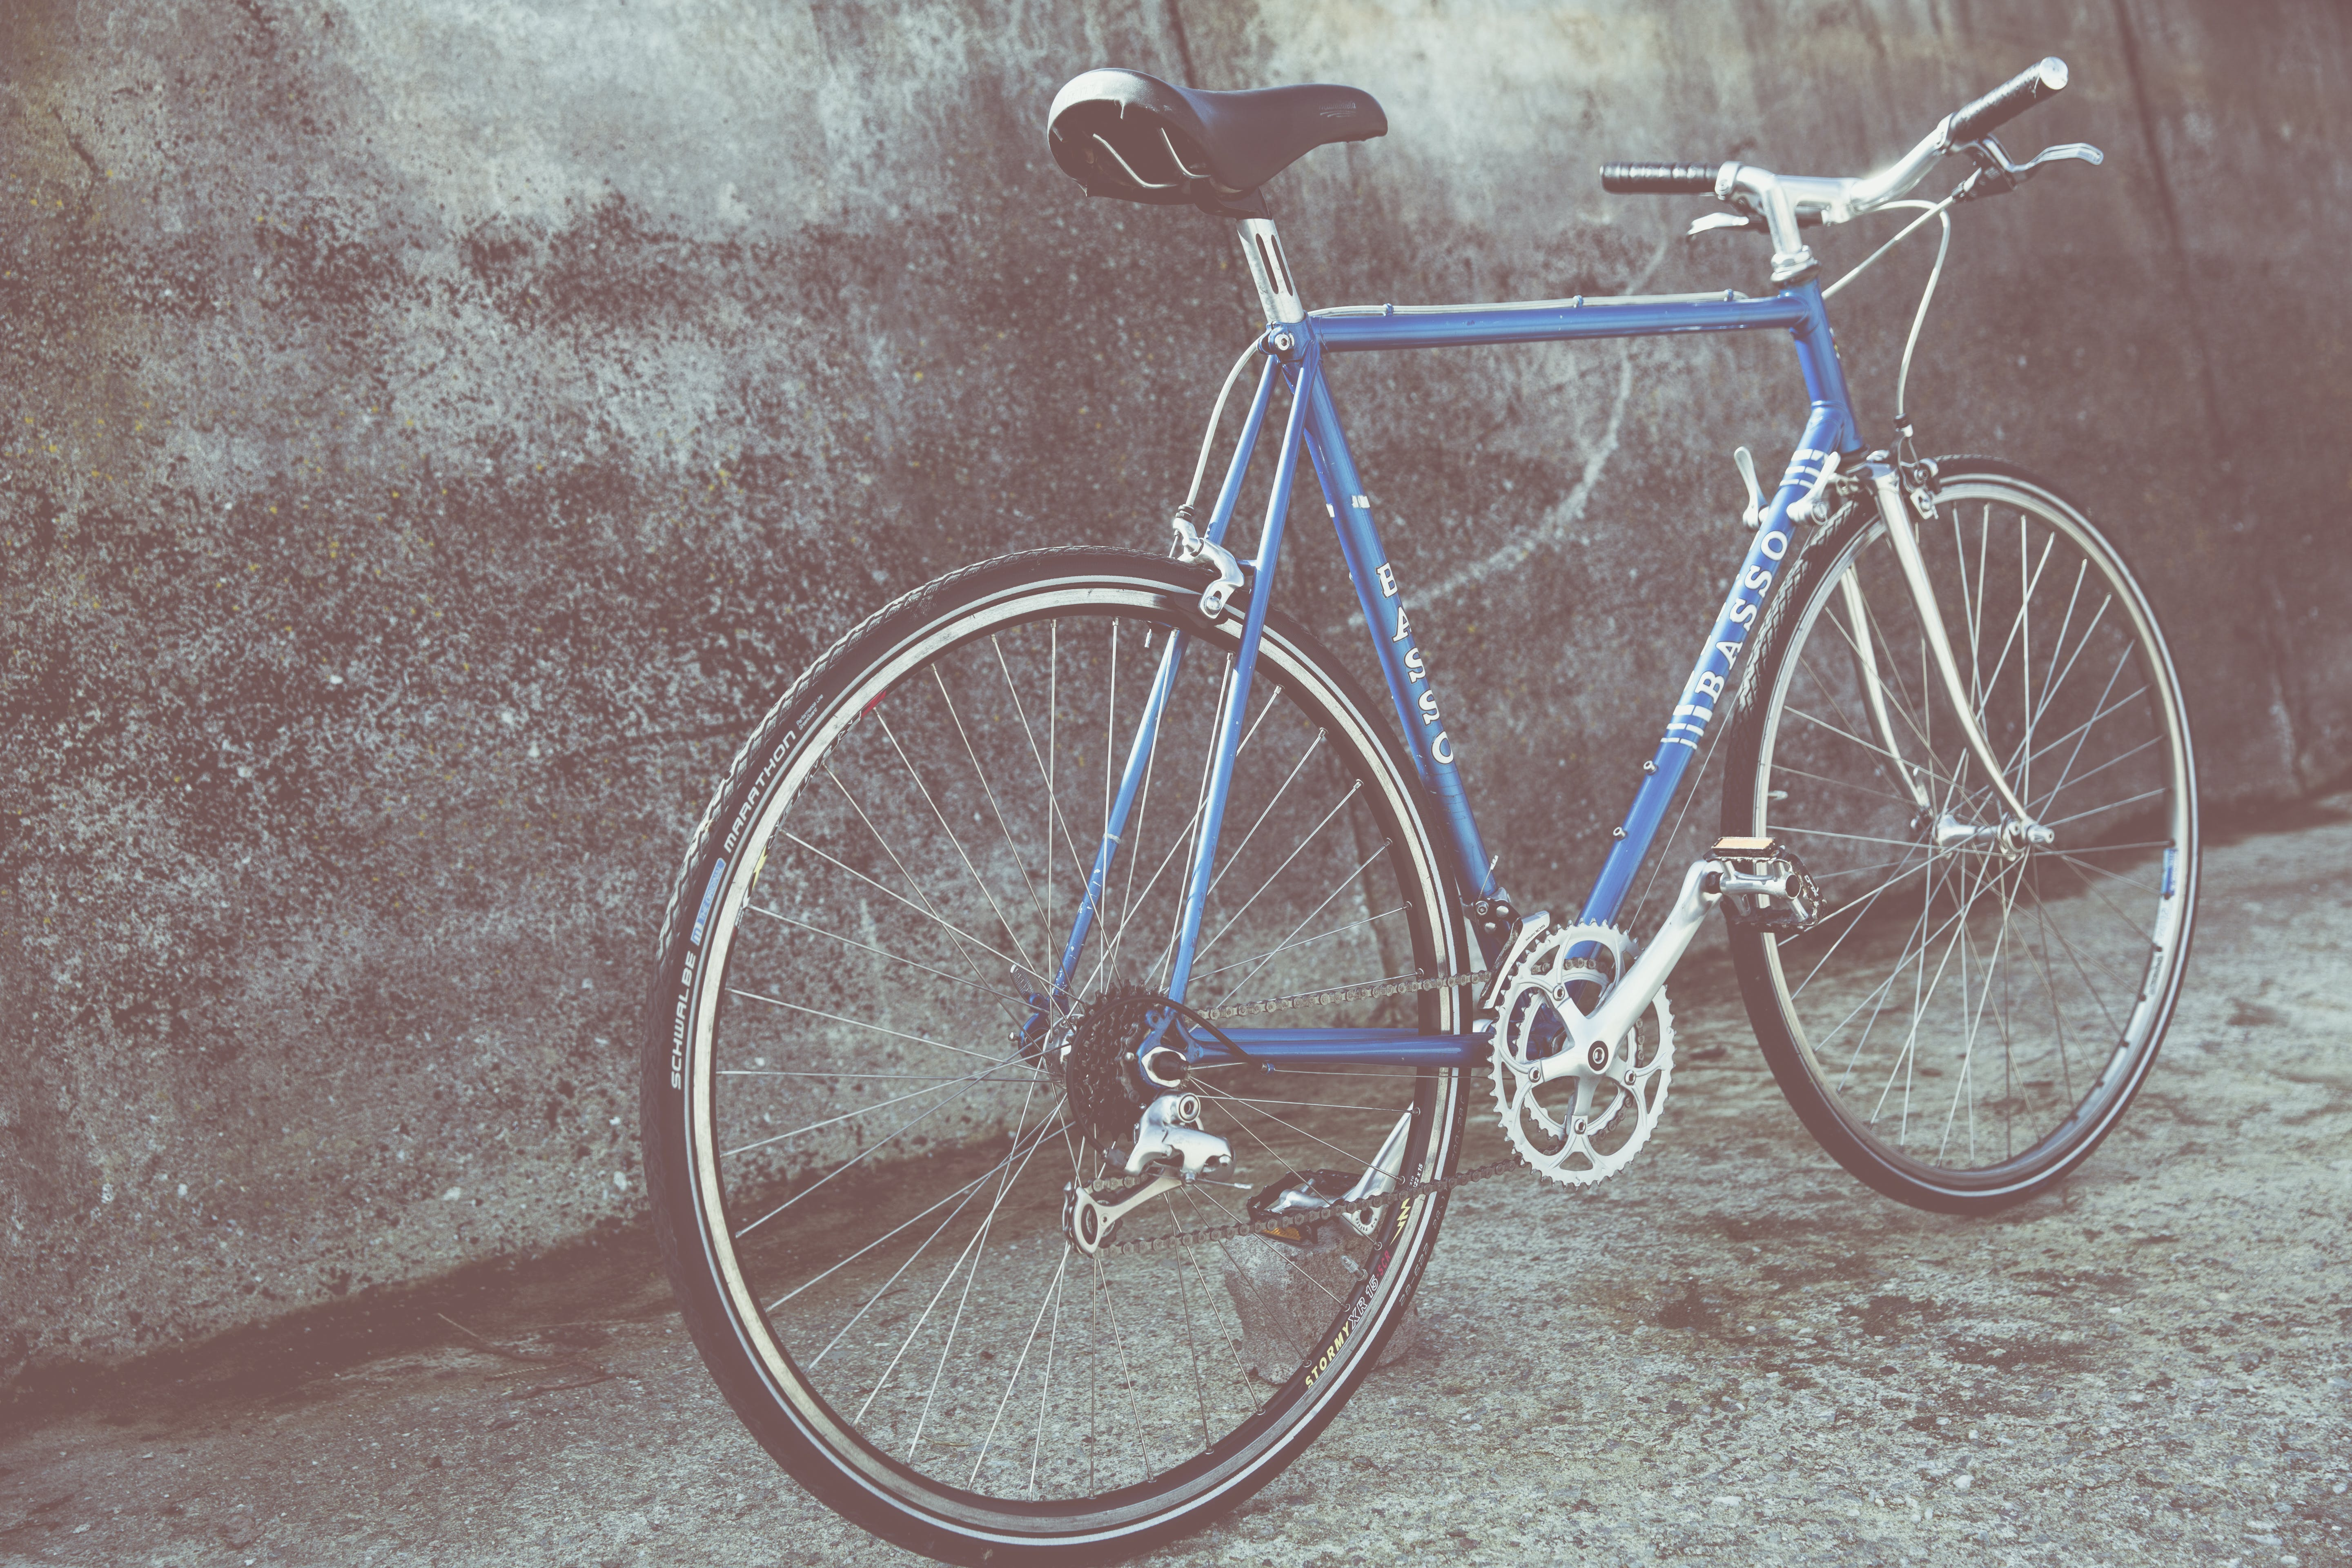 Blue Mountain Bicycle Beside Concrete Wall